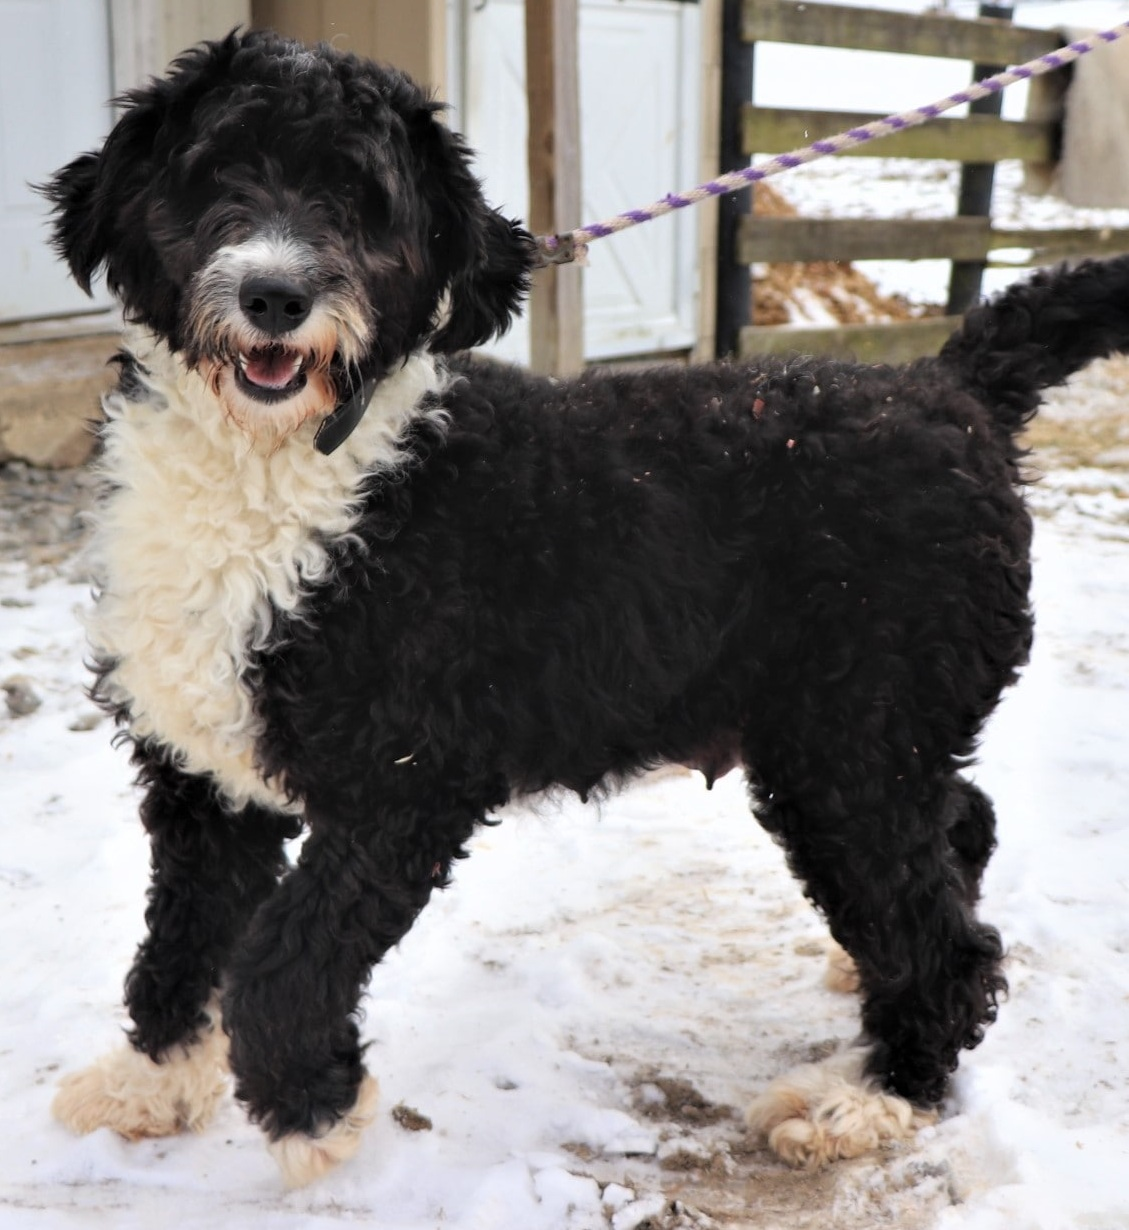 Carrie, the Bernedoodle mom